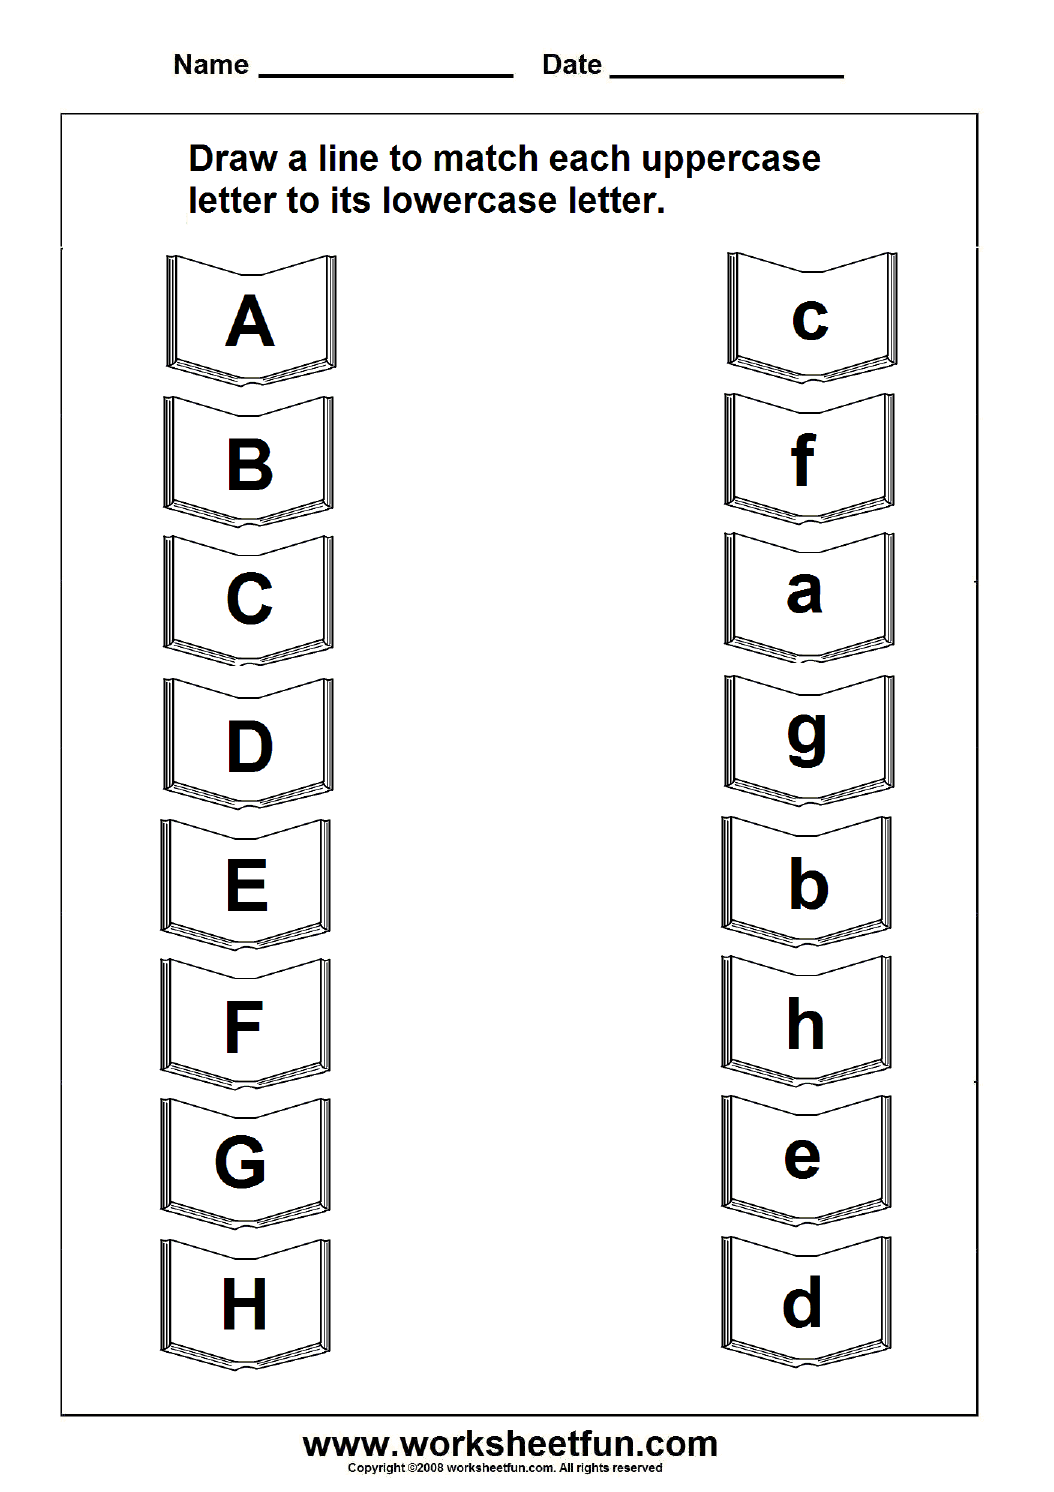 Worksheets Upper And Lowercase Letters Worksheets uppercase lowercase letter education pinterest worksheets letter